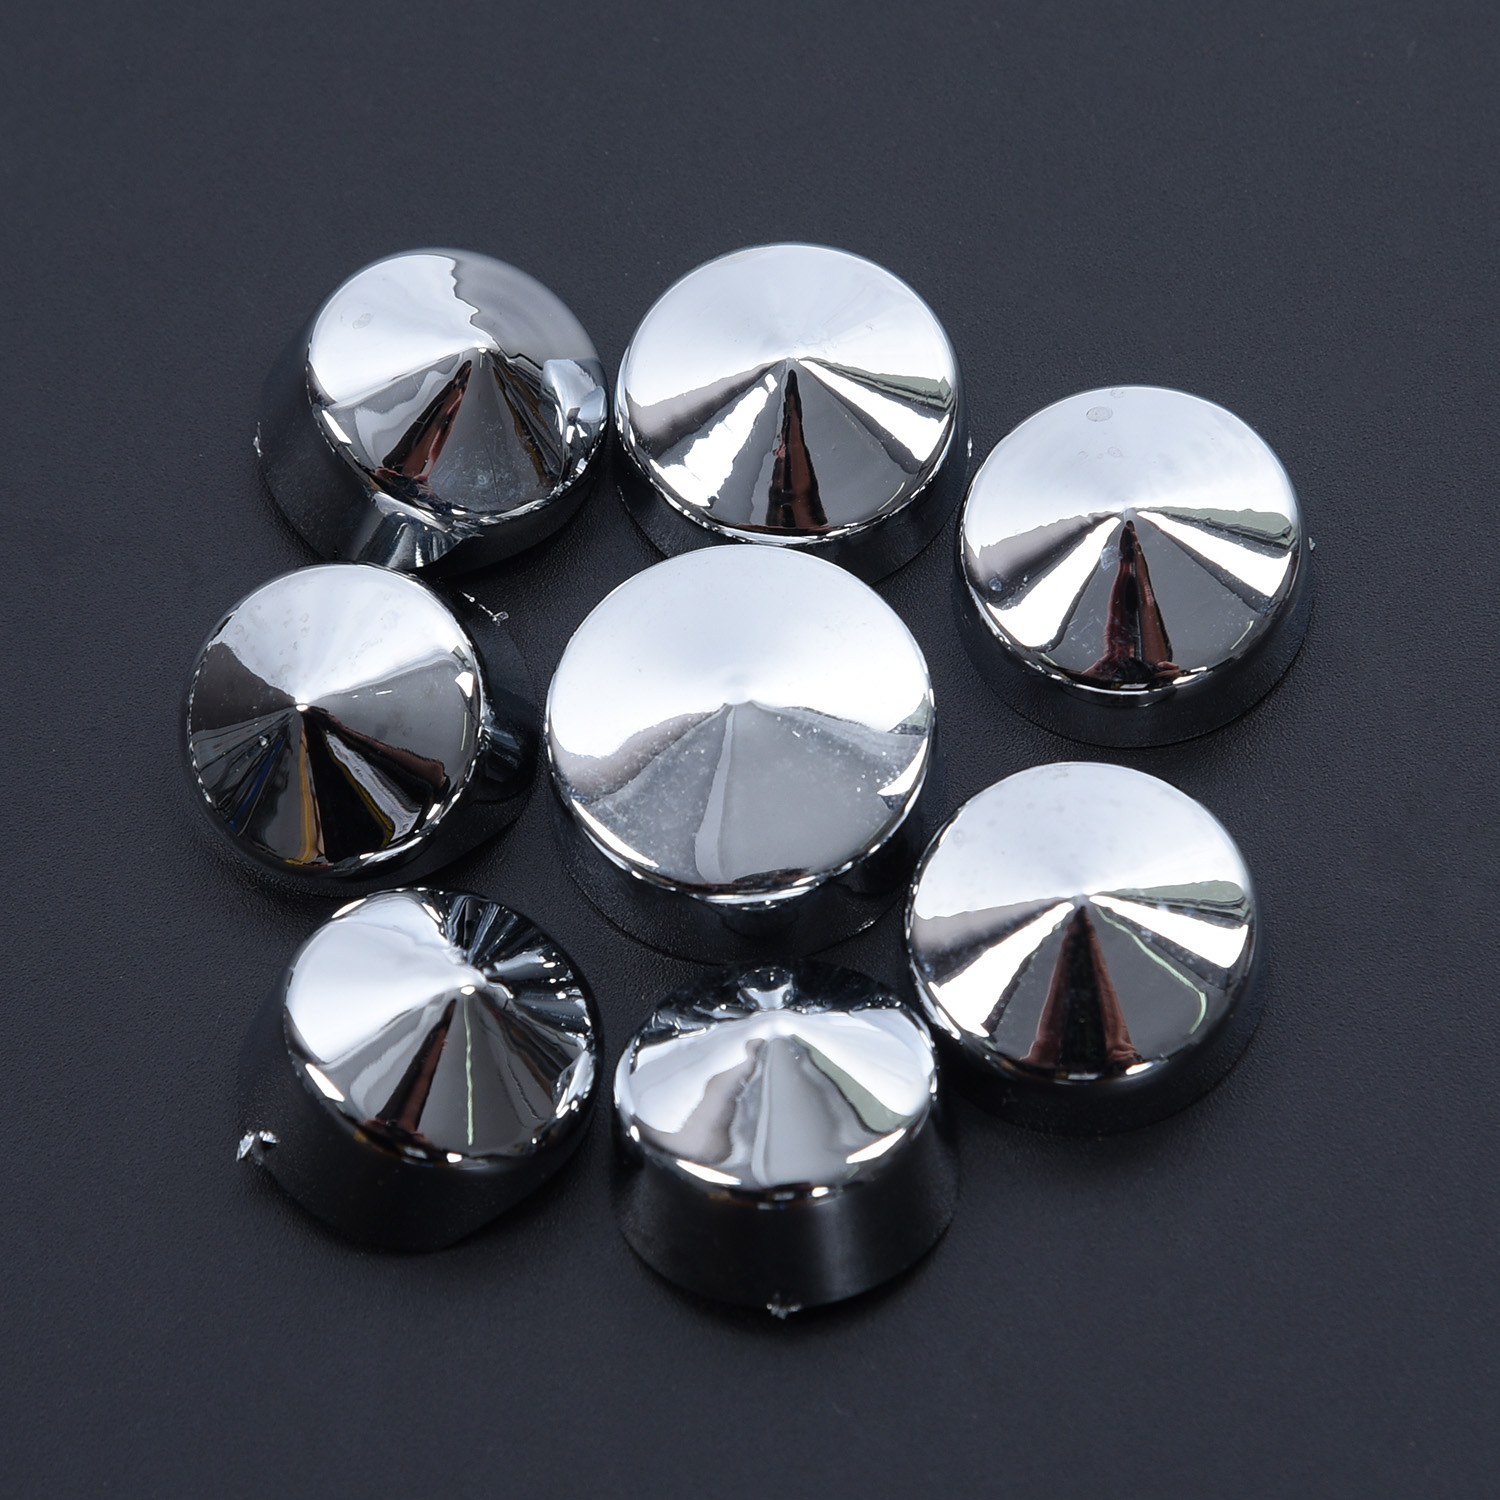 Chrome ABS Bolt Toppers Caps Cover Set Fit For Harley Softail Twin Cam 1984-2006